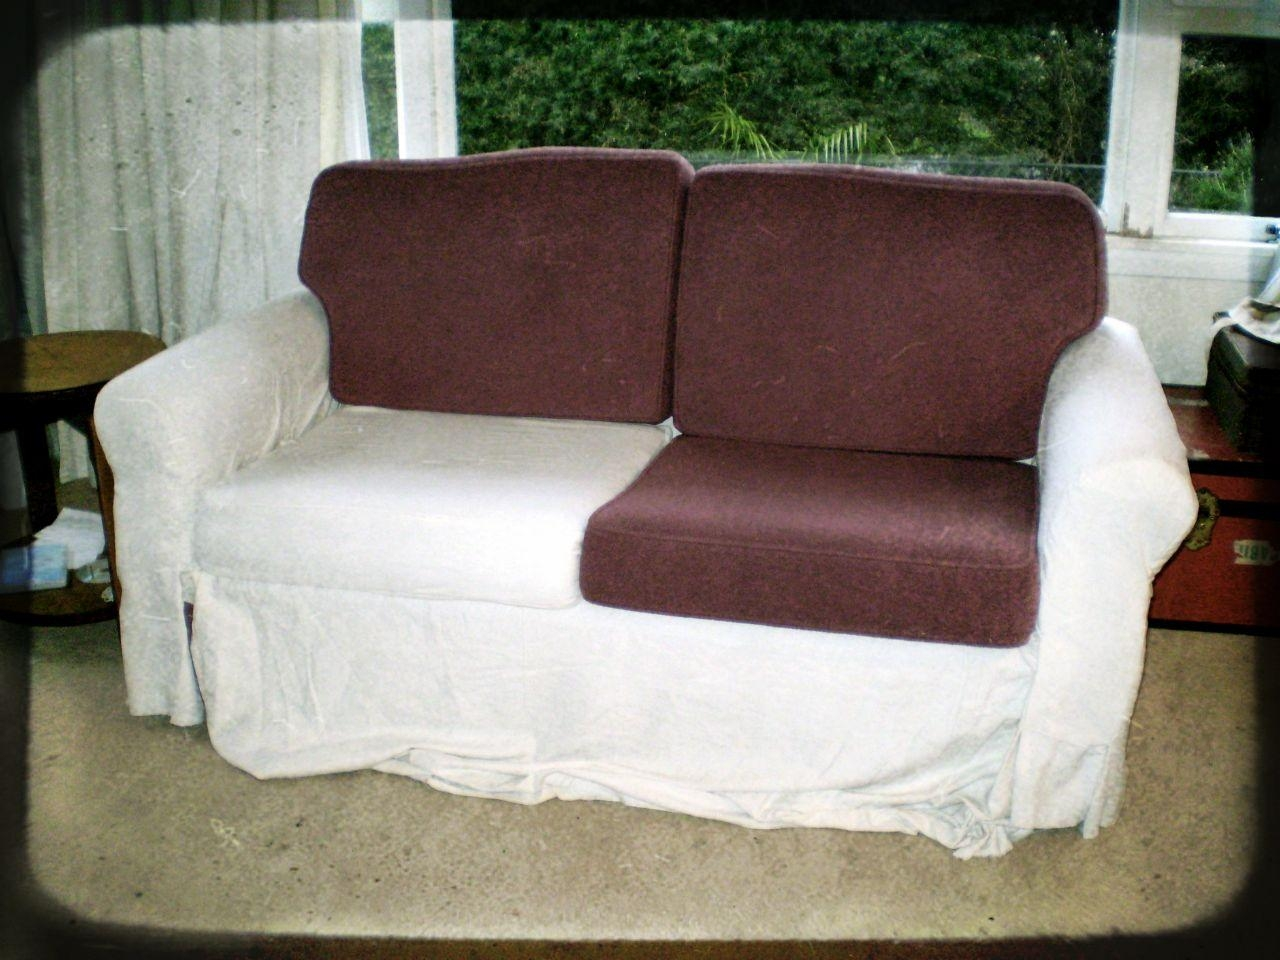 Furniture: Update Your Living Room With Best Sofa Slipcover Design Inside Canvas Sofas Covers (Image 11 of 20)